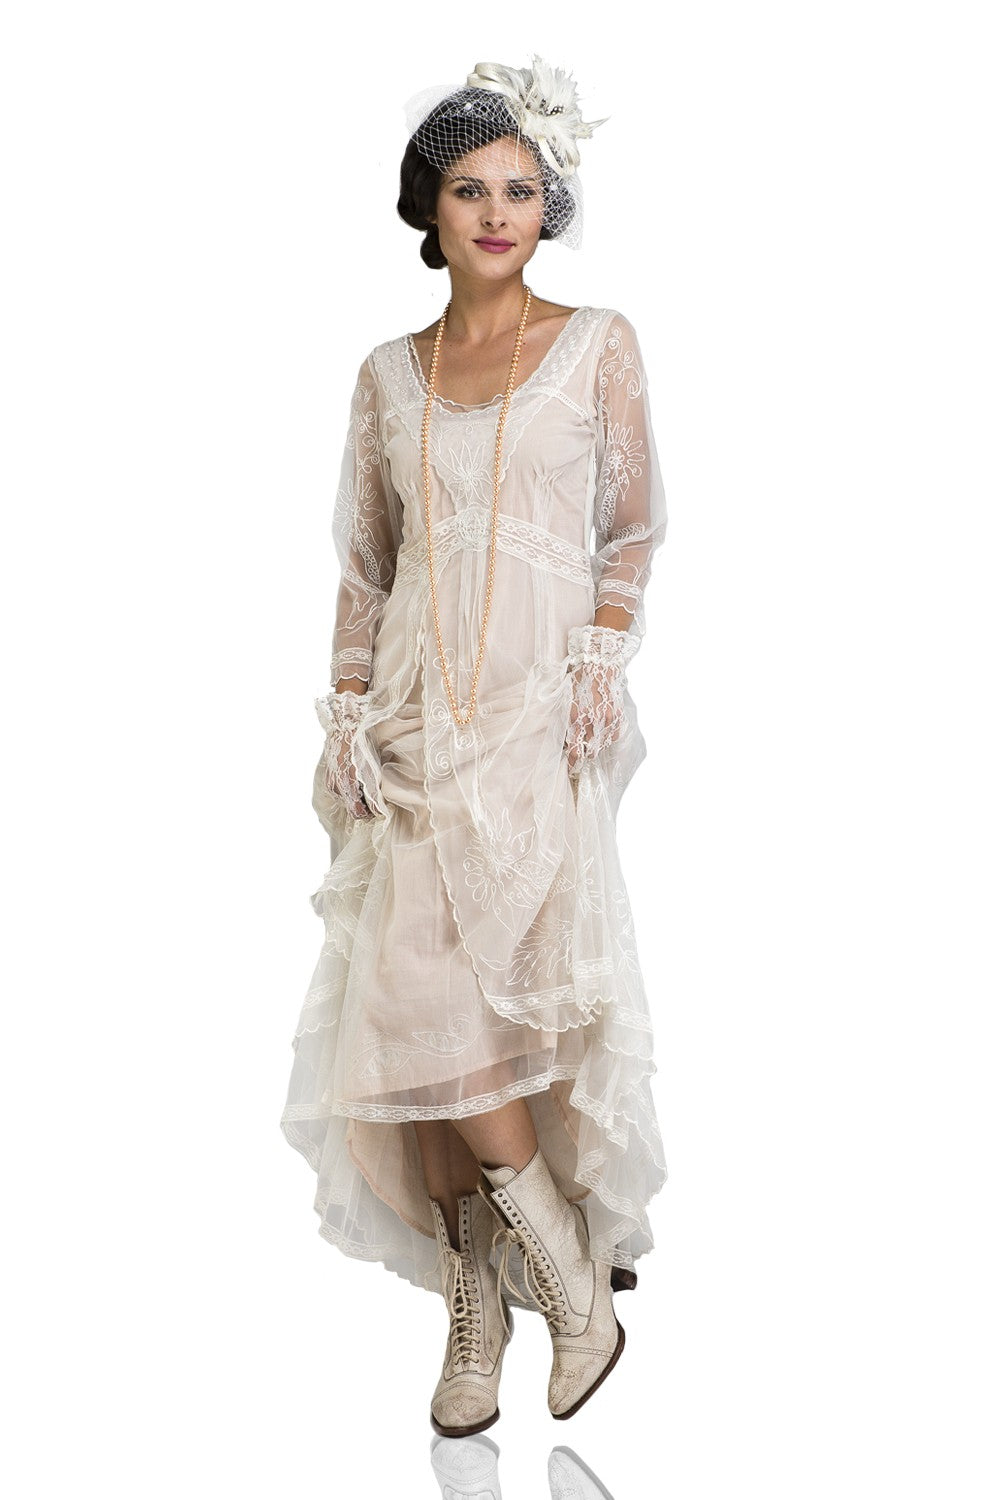 Victorian Wedding Dresses, Shoes, Accessories Downton Abbey Tea Party Gown in Ivory by Nataya $250.00 AT vintagedancer.com